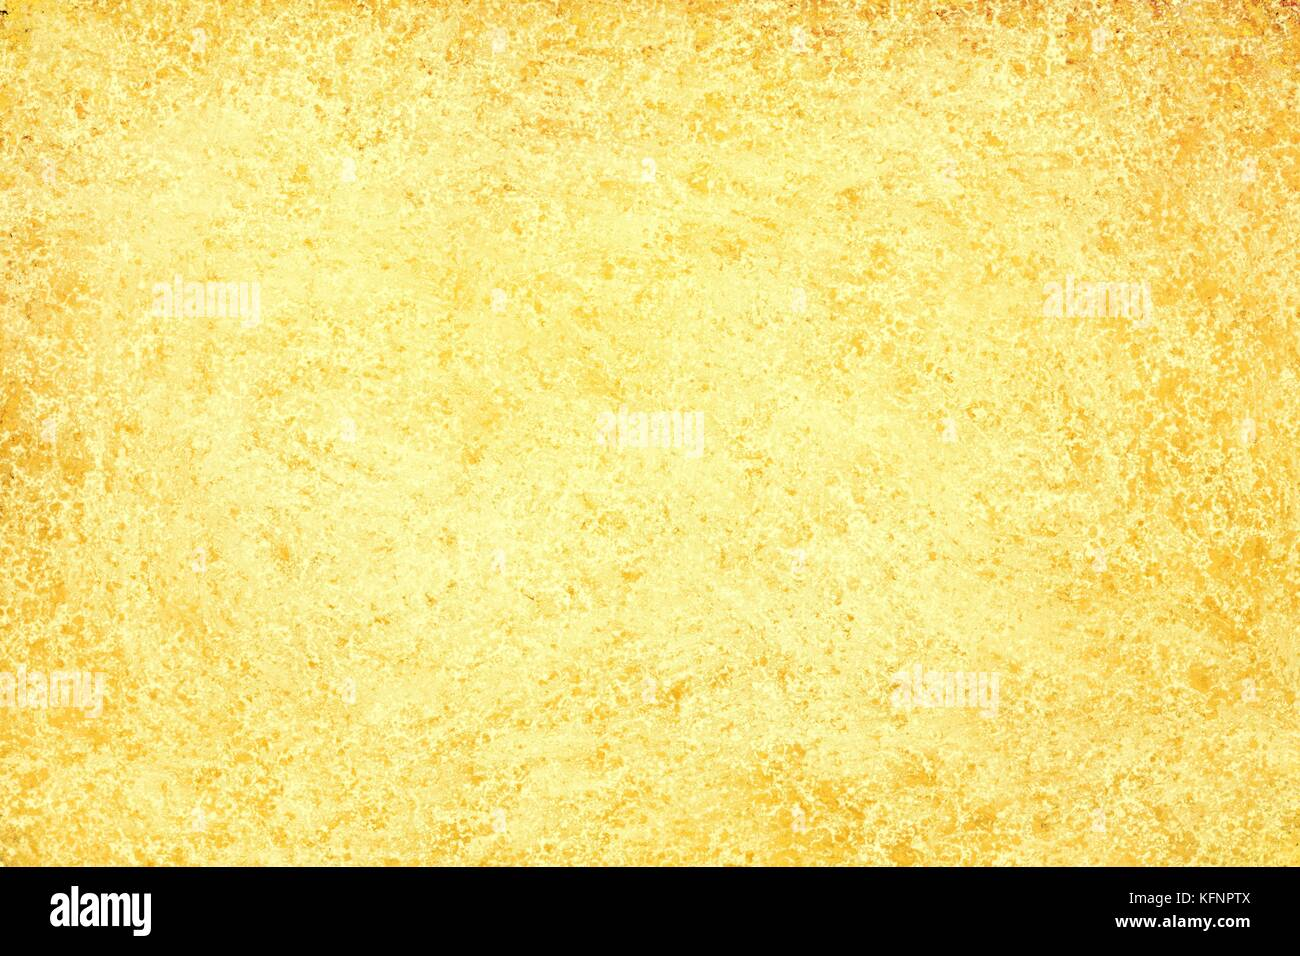 luxury distressed gold background with old vintage texture that is